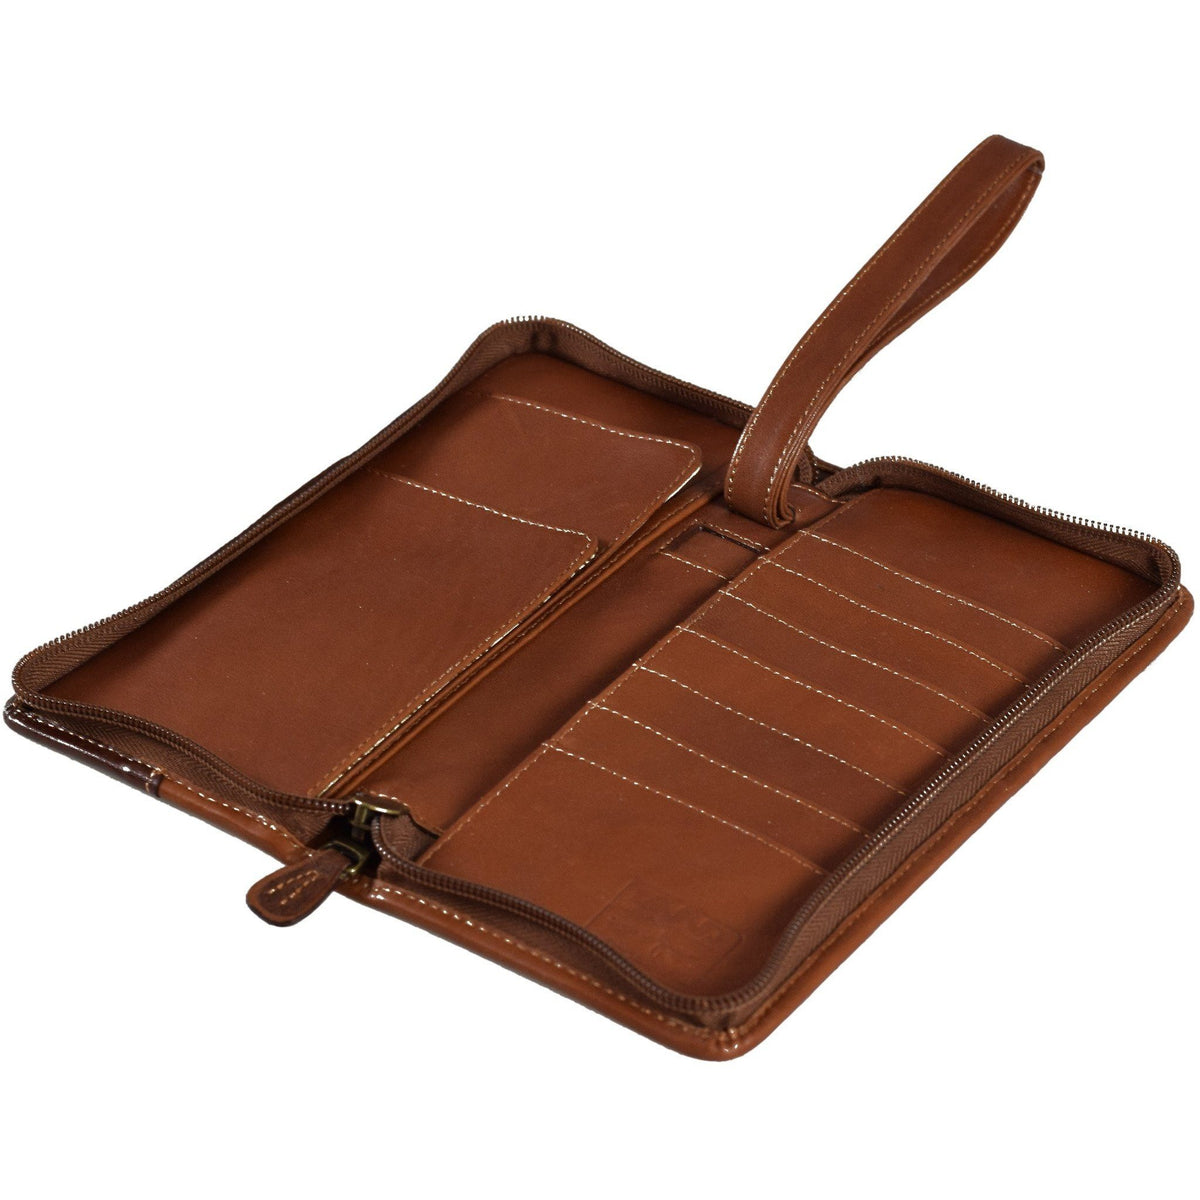 Santa Fe Zip Around Travel Organizer, Travel Organizer | LAND Leather